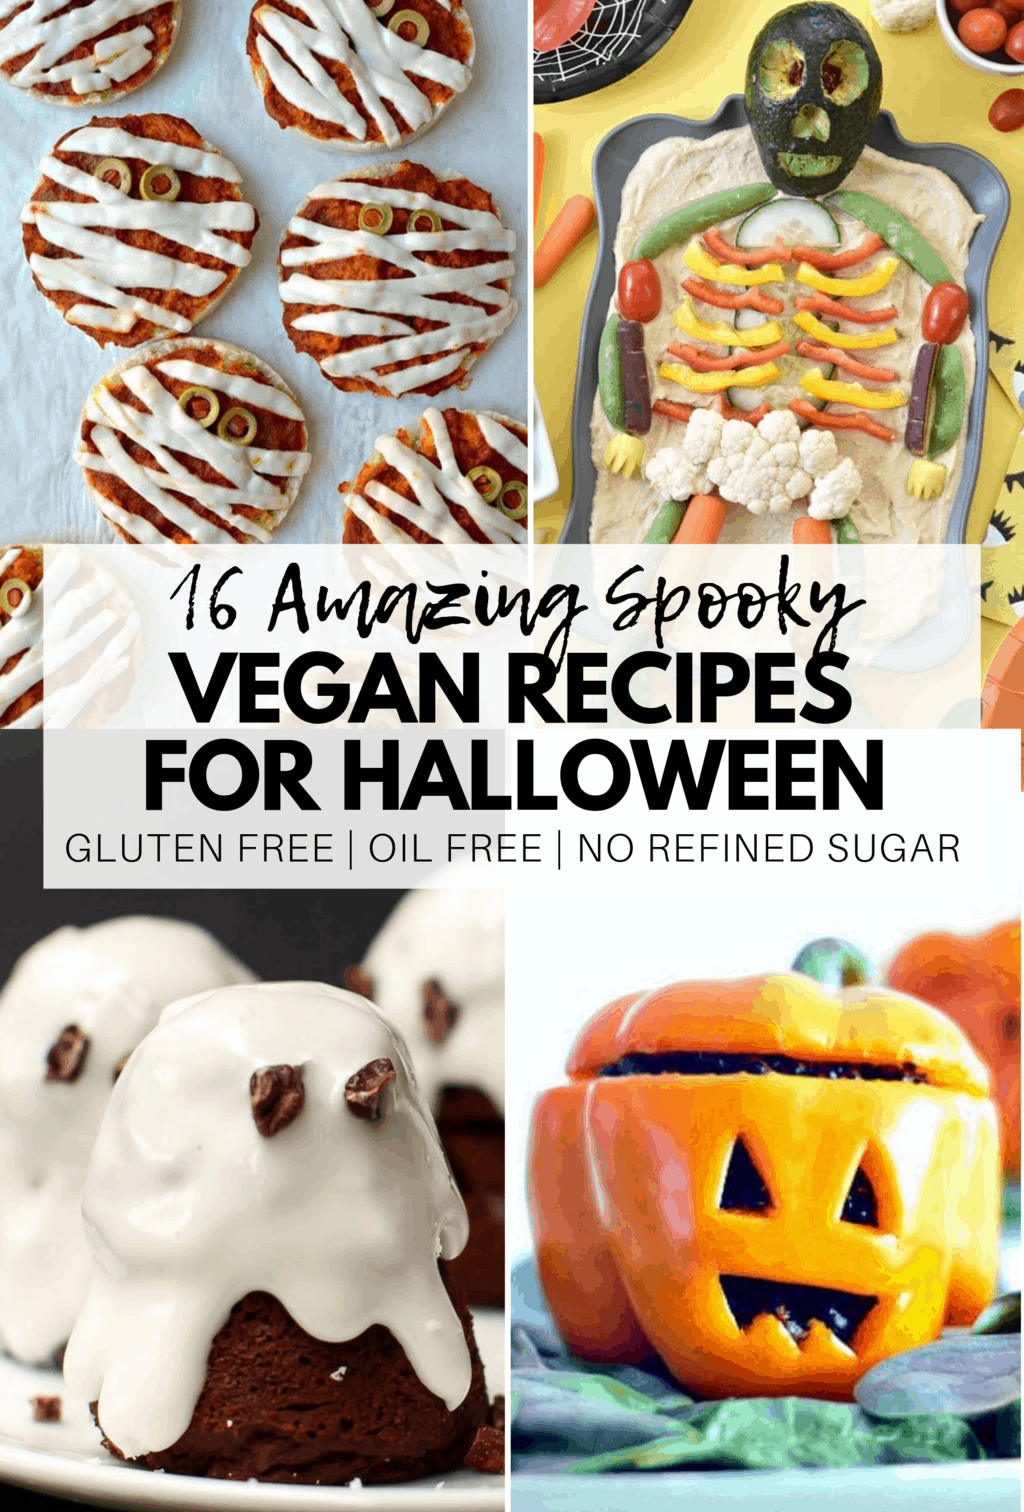 16 Amazing Vegan Halloween Recipes Gluten Free No Refined Sugar Vegan Halloween Food Vegan Halloween Halloween Recipes